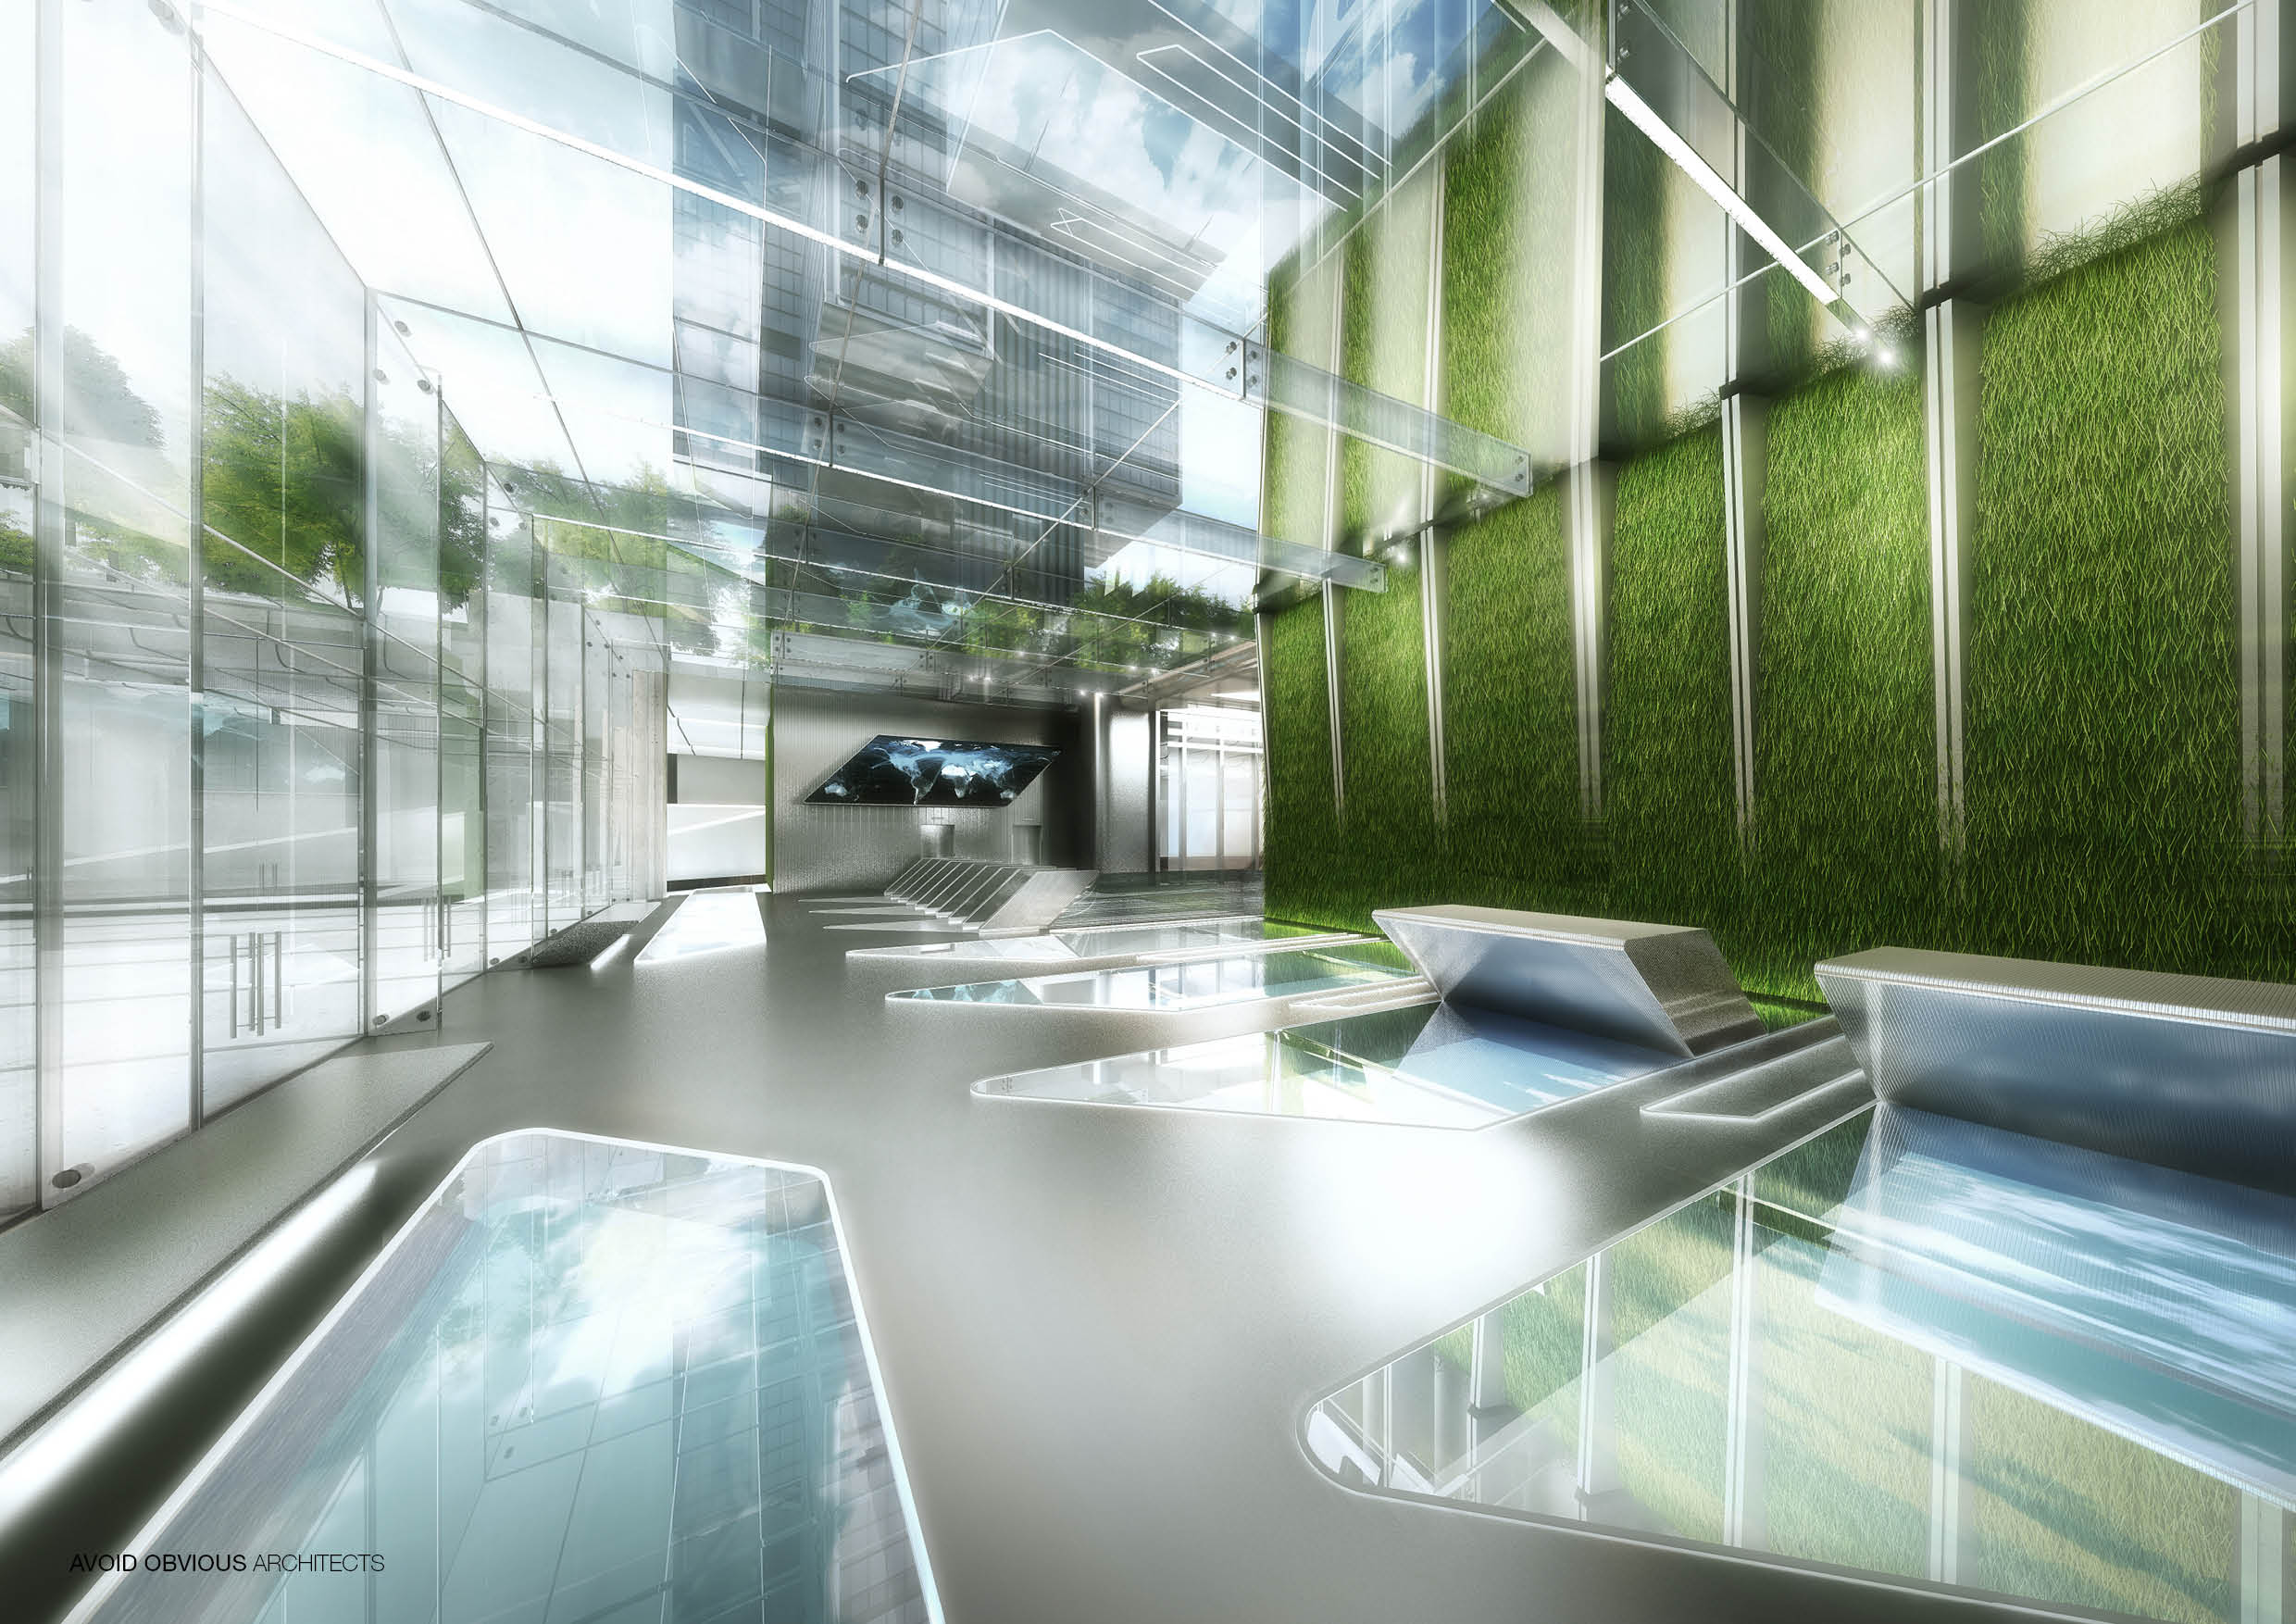 Office, Sustainable, customizable, flexible, workplace, future, architecture, interior, design, green, plants, indoors, avoid obvious, aoa, aoarchitect, aviation, air, flying, airline, lobby, exhibition, 2020, garden, fly